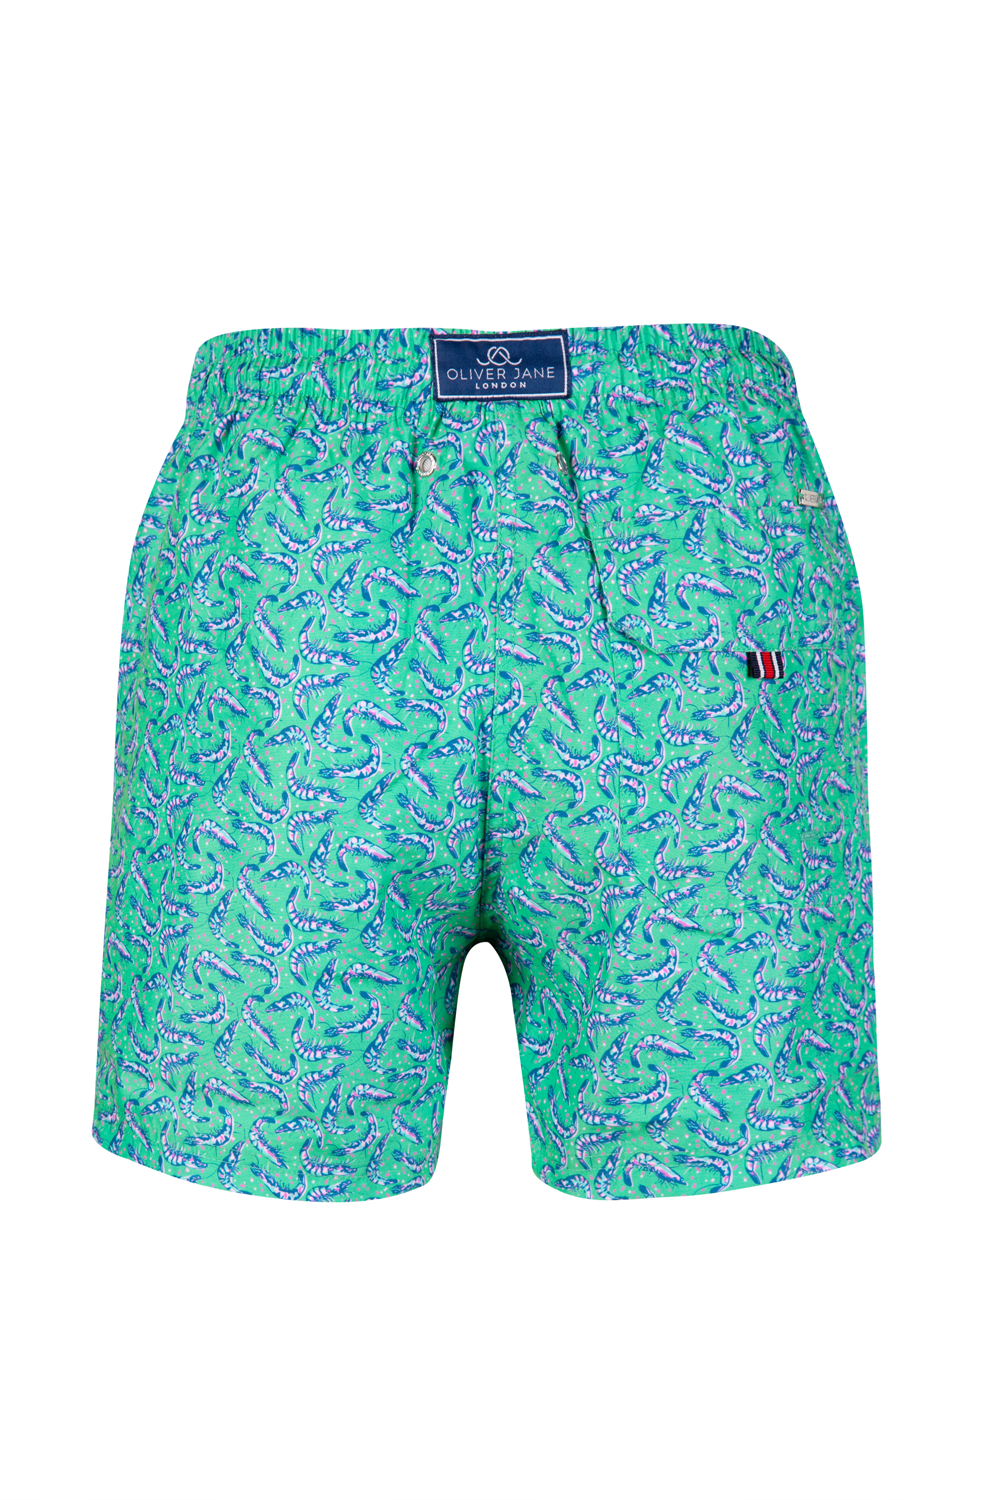 The Winking Prawn Green Swim Short